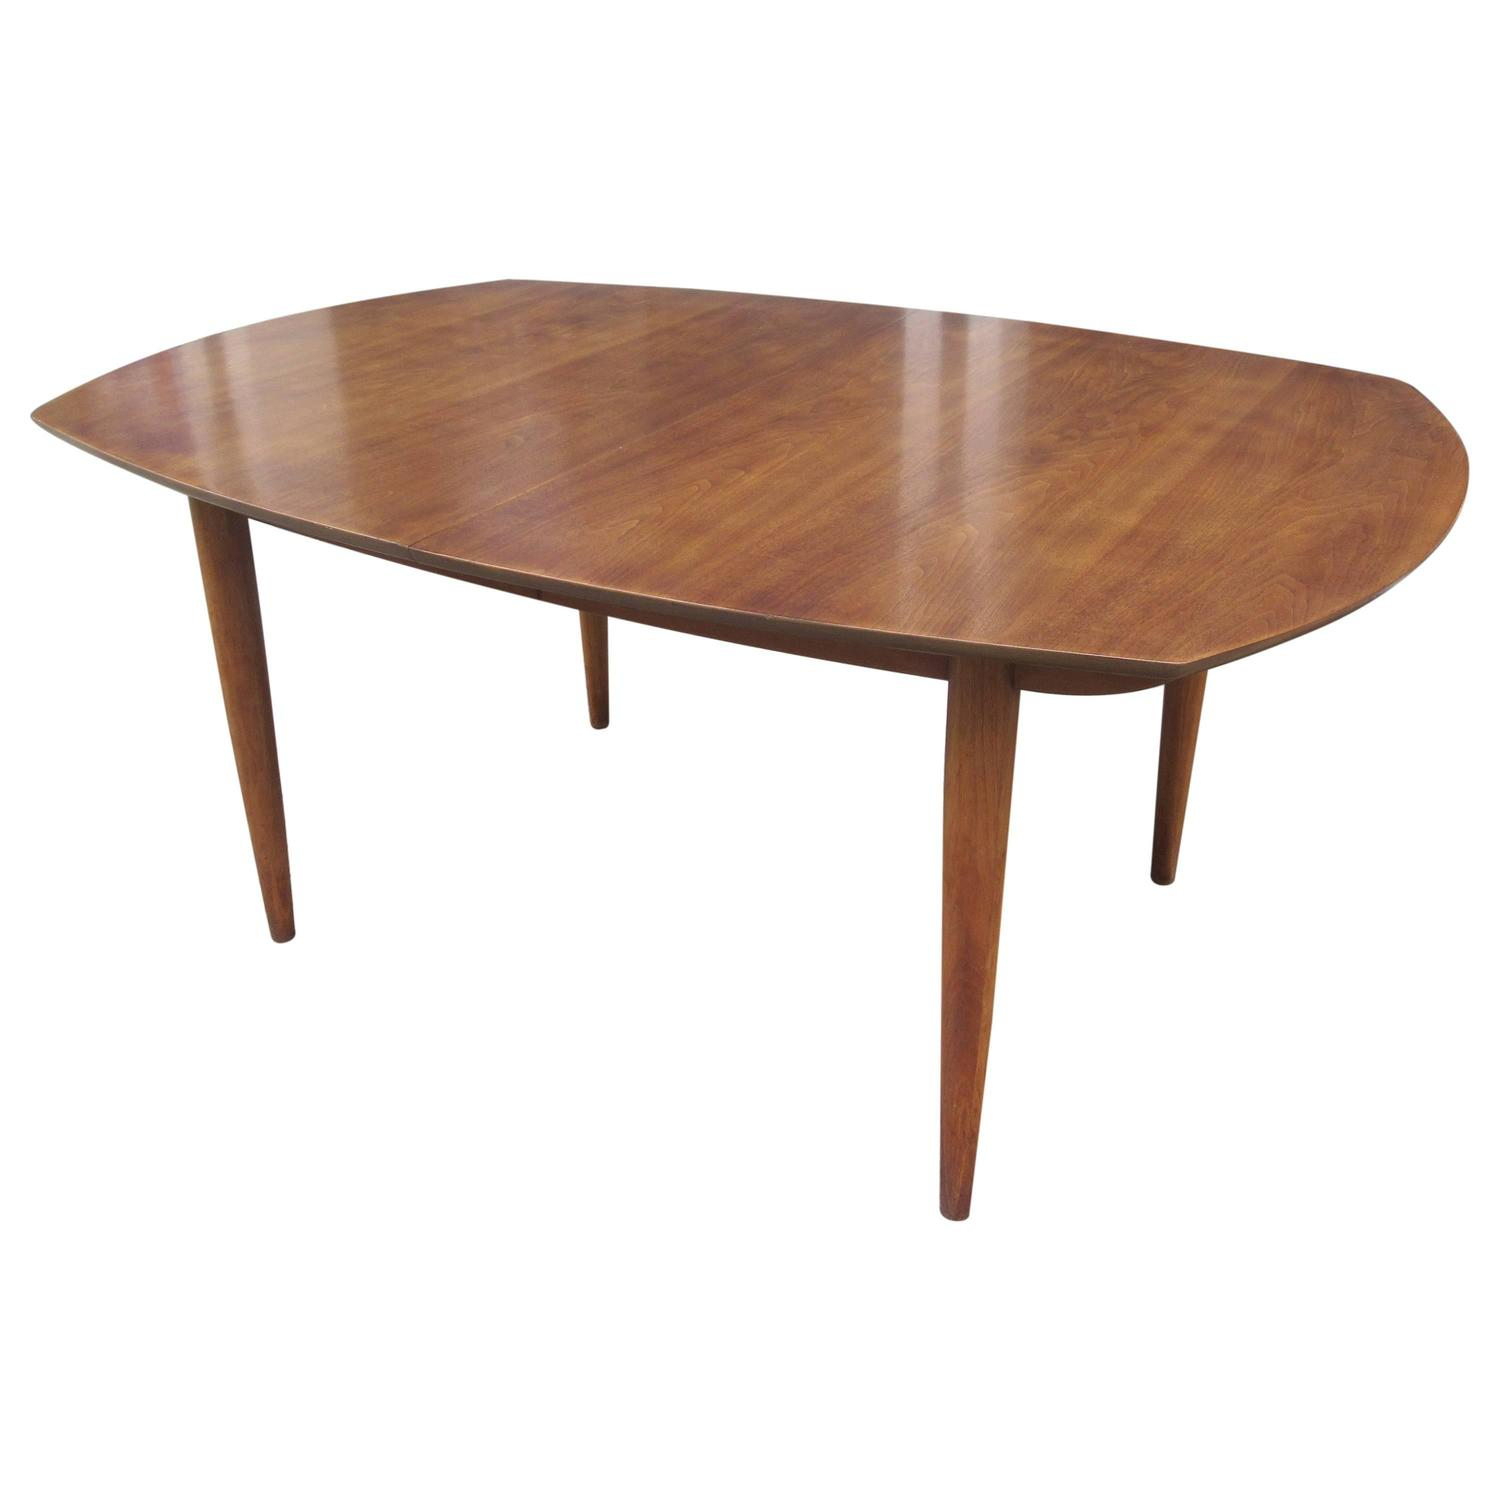 American Walnut Boat Shaped Dining Table At 1stdibs